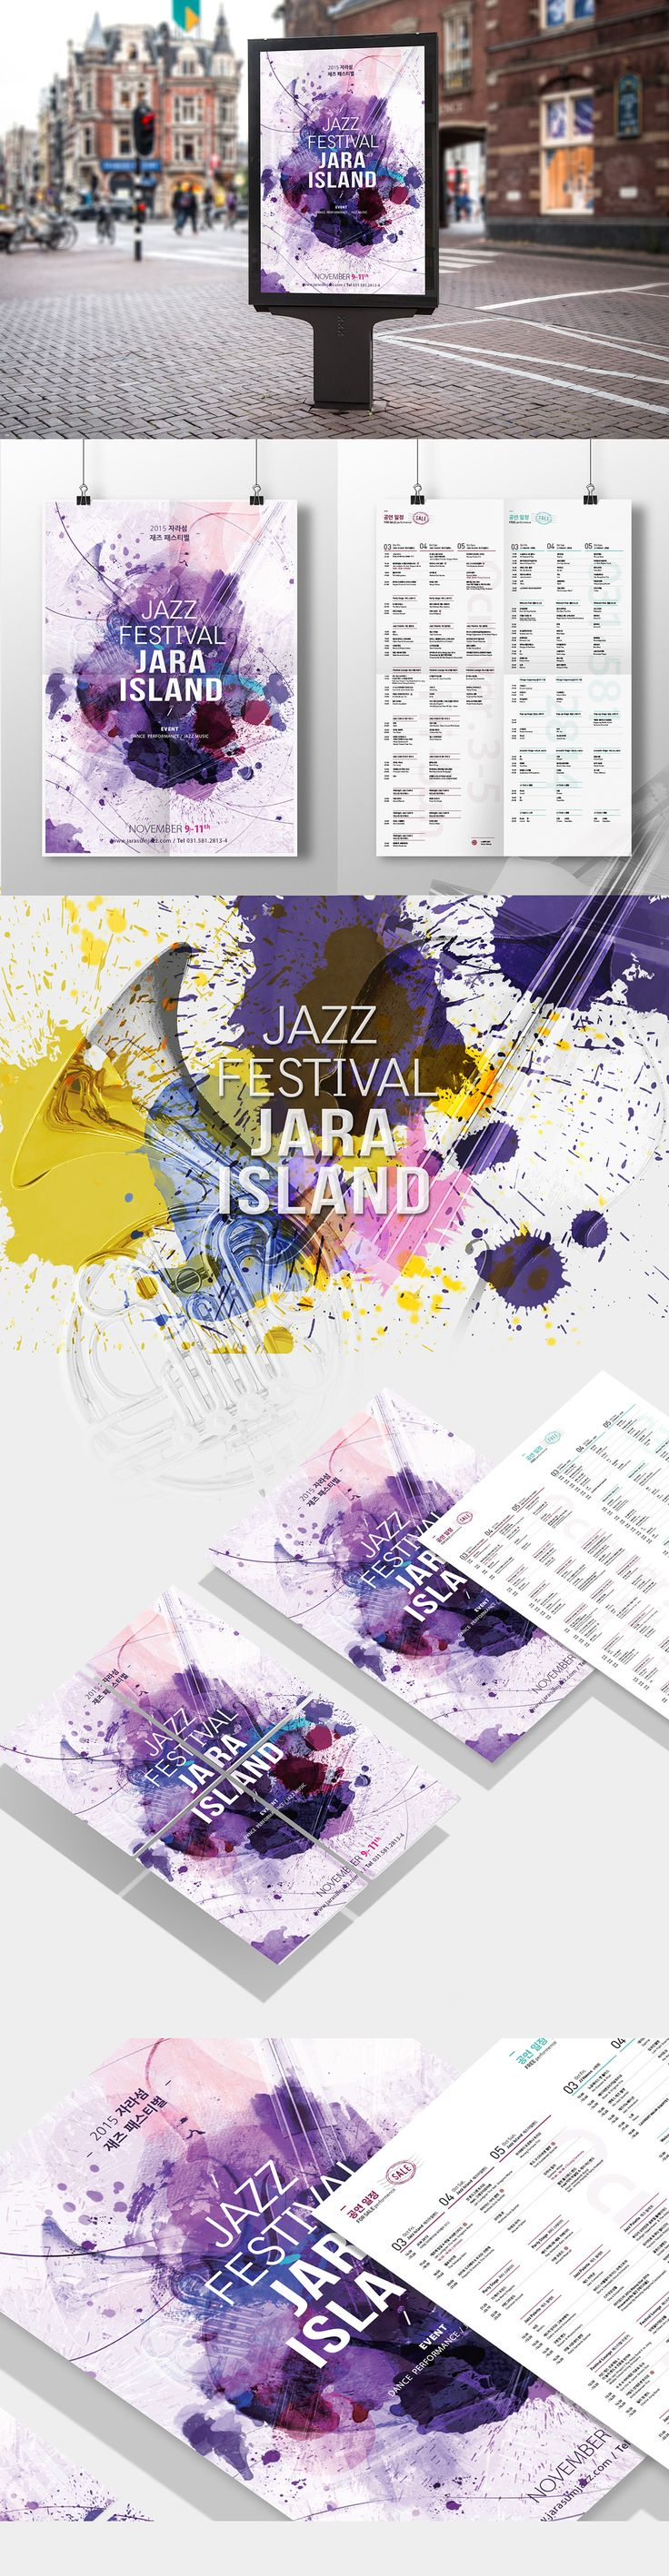 Zara poster design - 2015 Jazz Fetival Zara Island In Korea On Behance